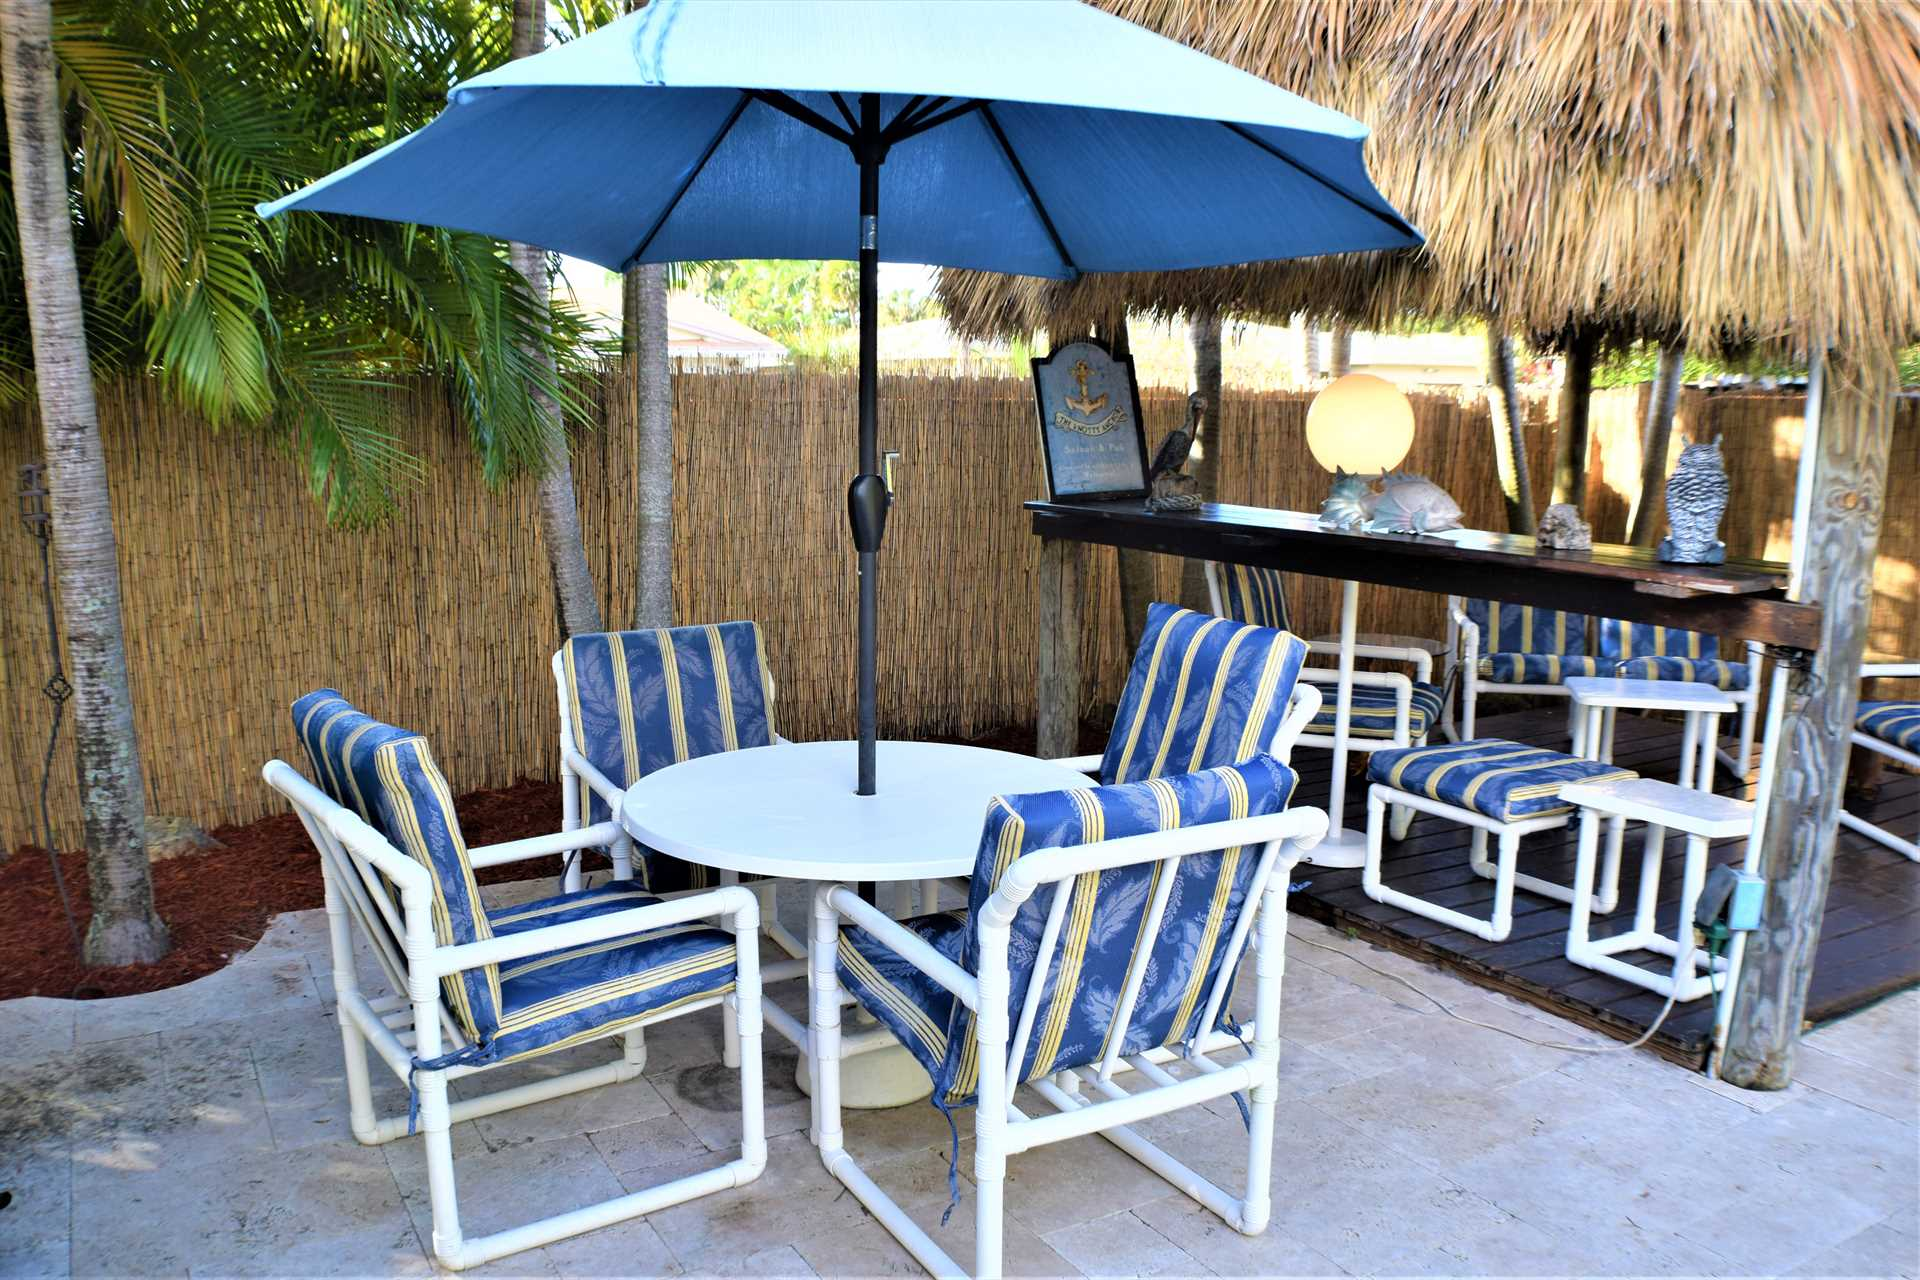 Dine poolside and enjoy the South Florida Lifestyle.